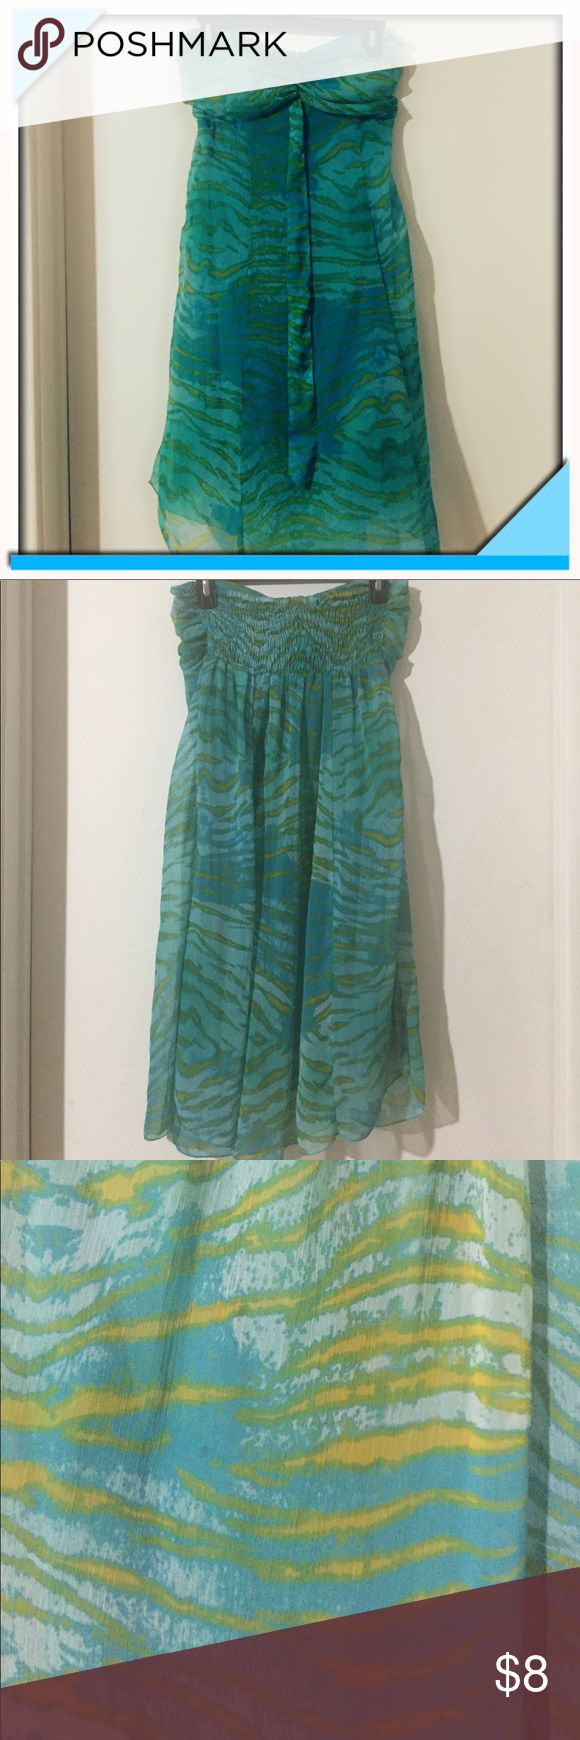 Strapless Blue and Green Beach Dress Strapless dress, very oceany look: blue and green. Dress is sheer with a built in aqua slip underneath. Dress is very stretchy, a one size fits most kind of deal. Lightly used, no defects, in excellent condition. Made of 100% polyester. India Boutique Dresses Strapless